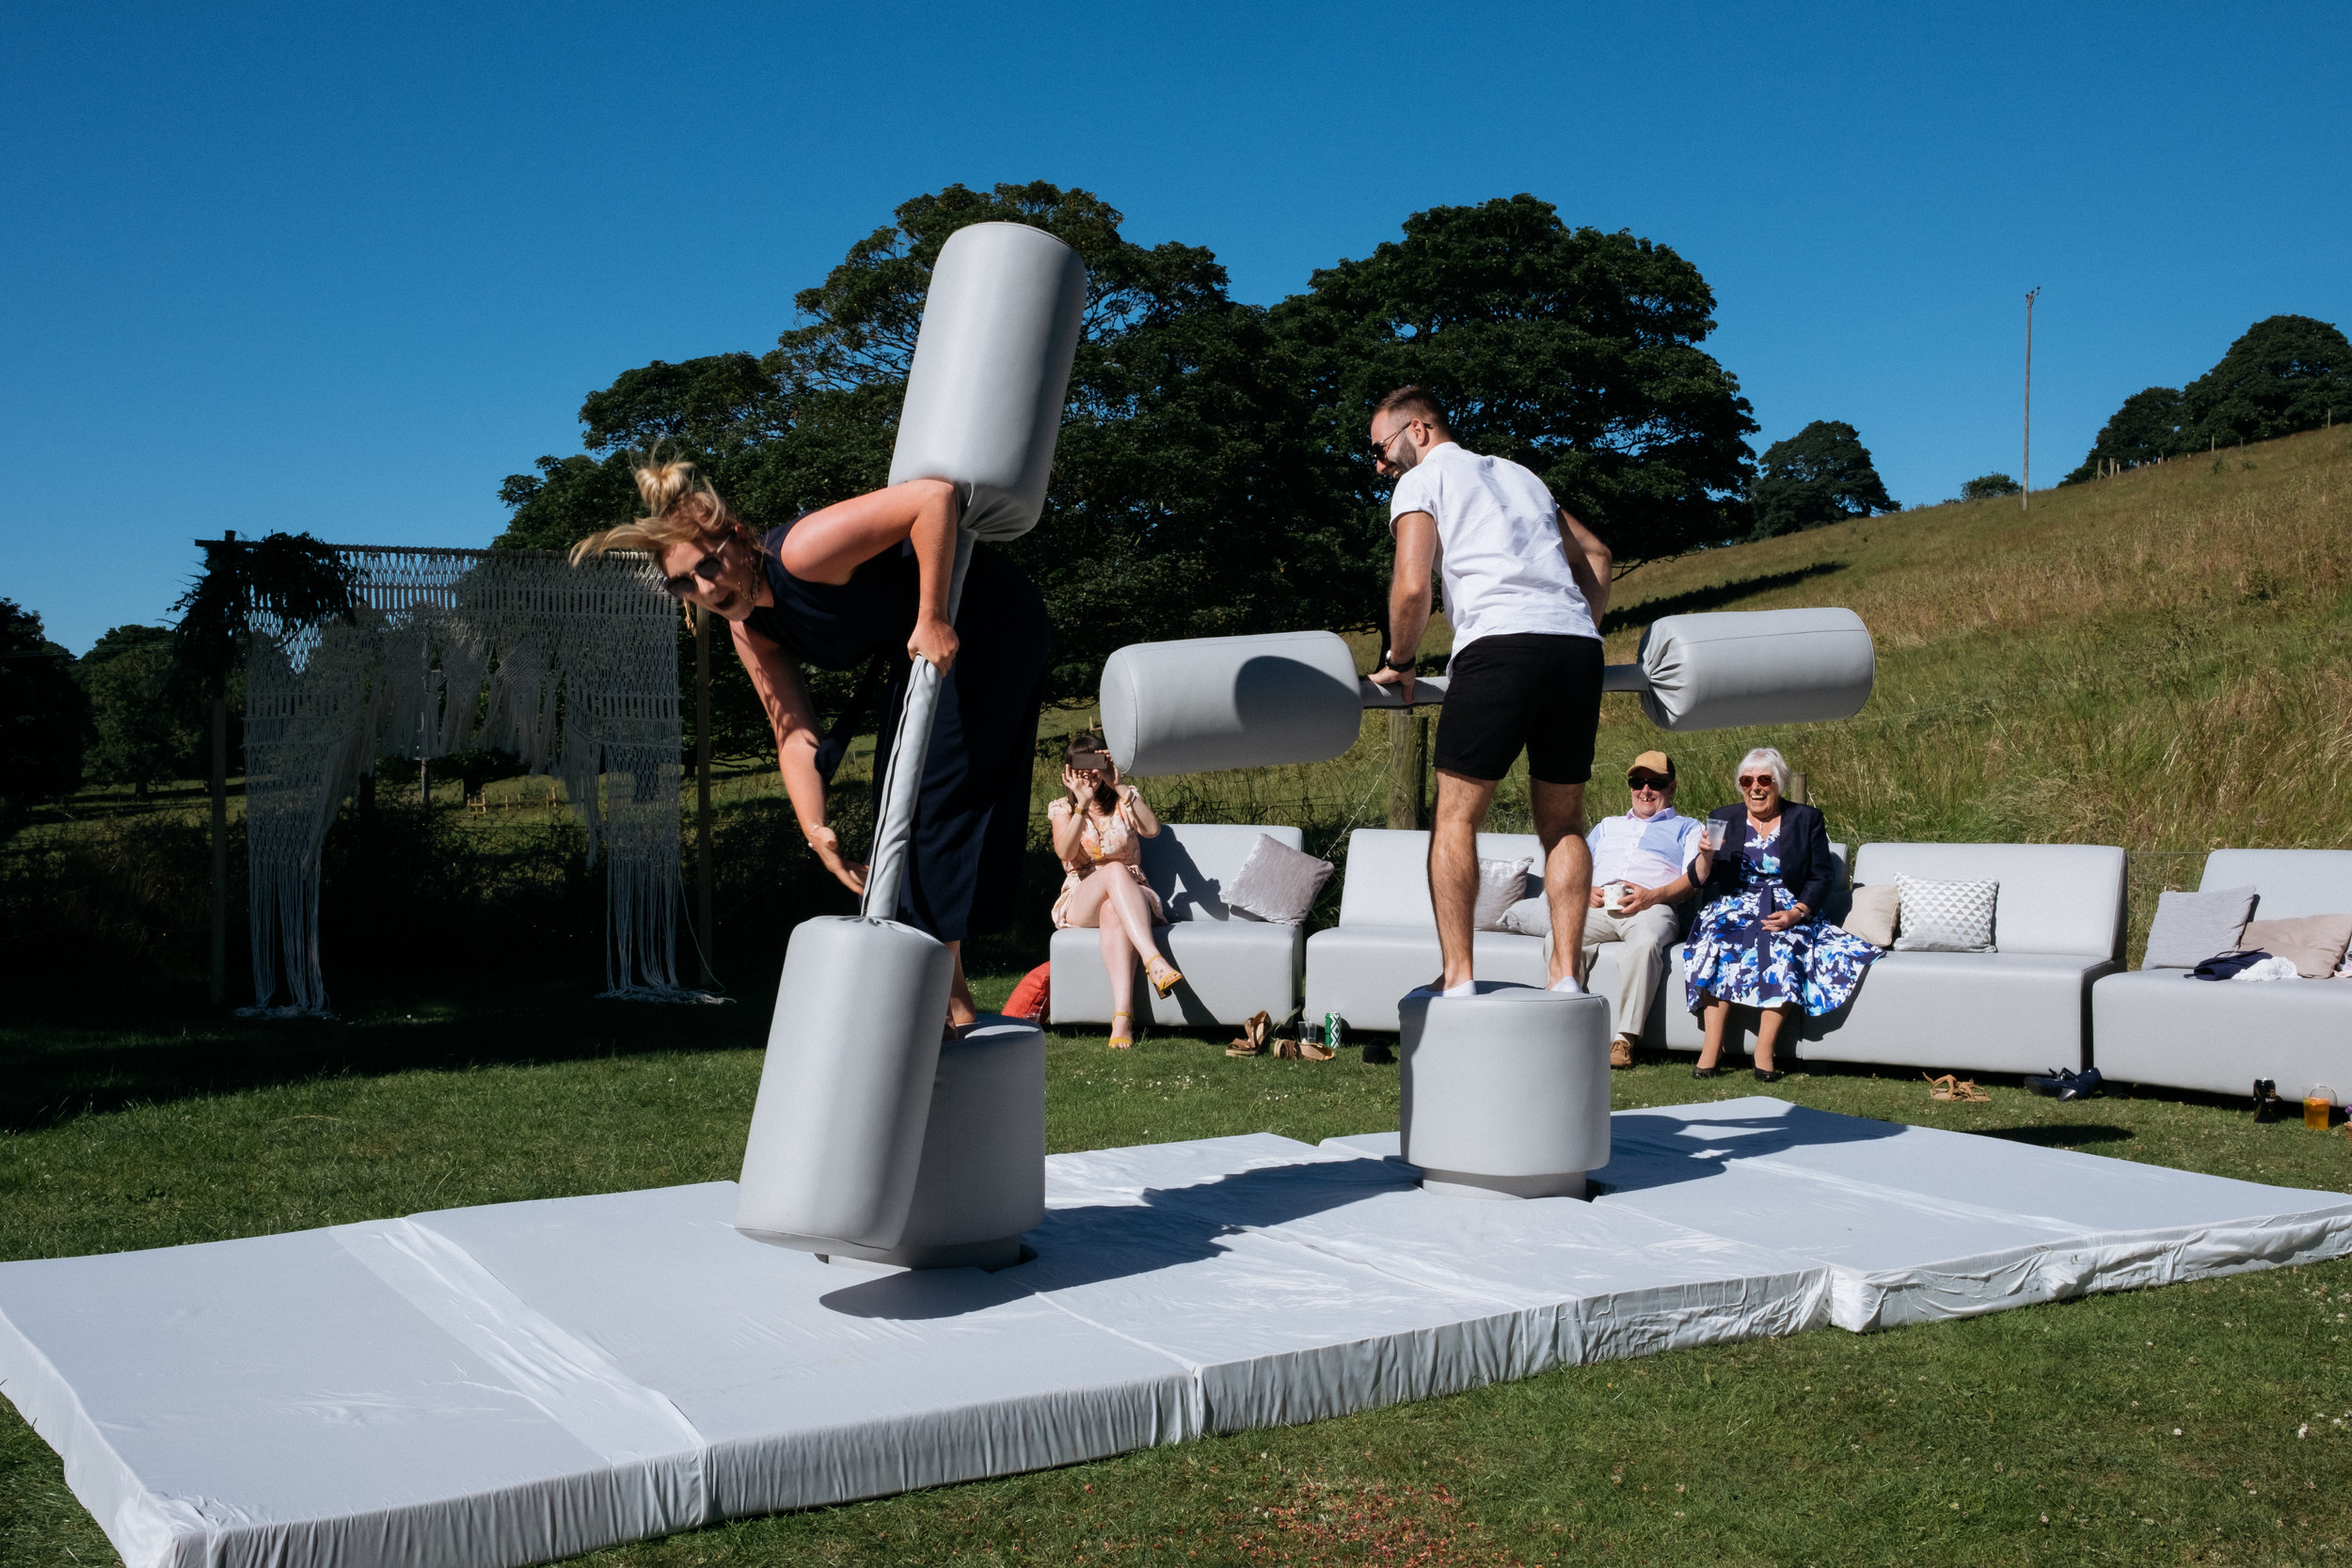 Wedding guests playing gladiator outdoor games